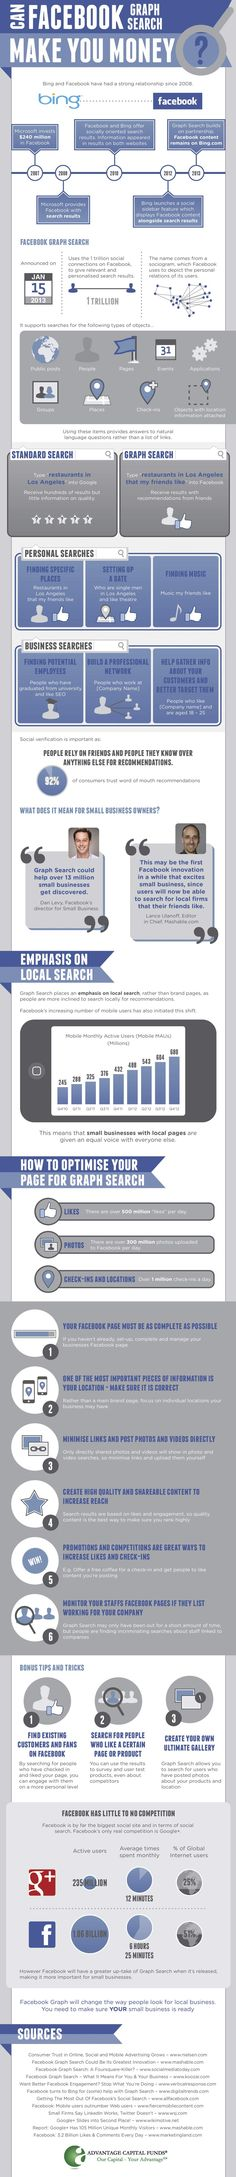 Can Graph Search make you Money? Strategisches Marketing, Facebook Marketing, Marketing Digital, Internet Marketing, Online Marketing, Social Media Marketing, Marketing Ideas, Business Marketing, Web 2.0